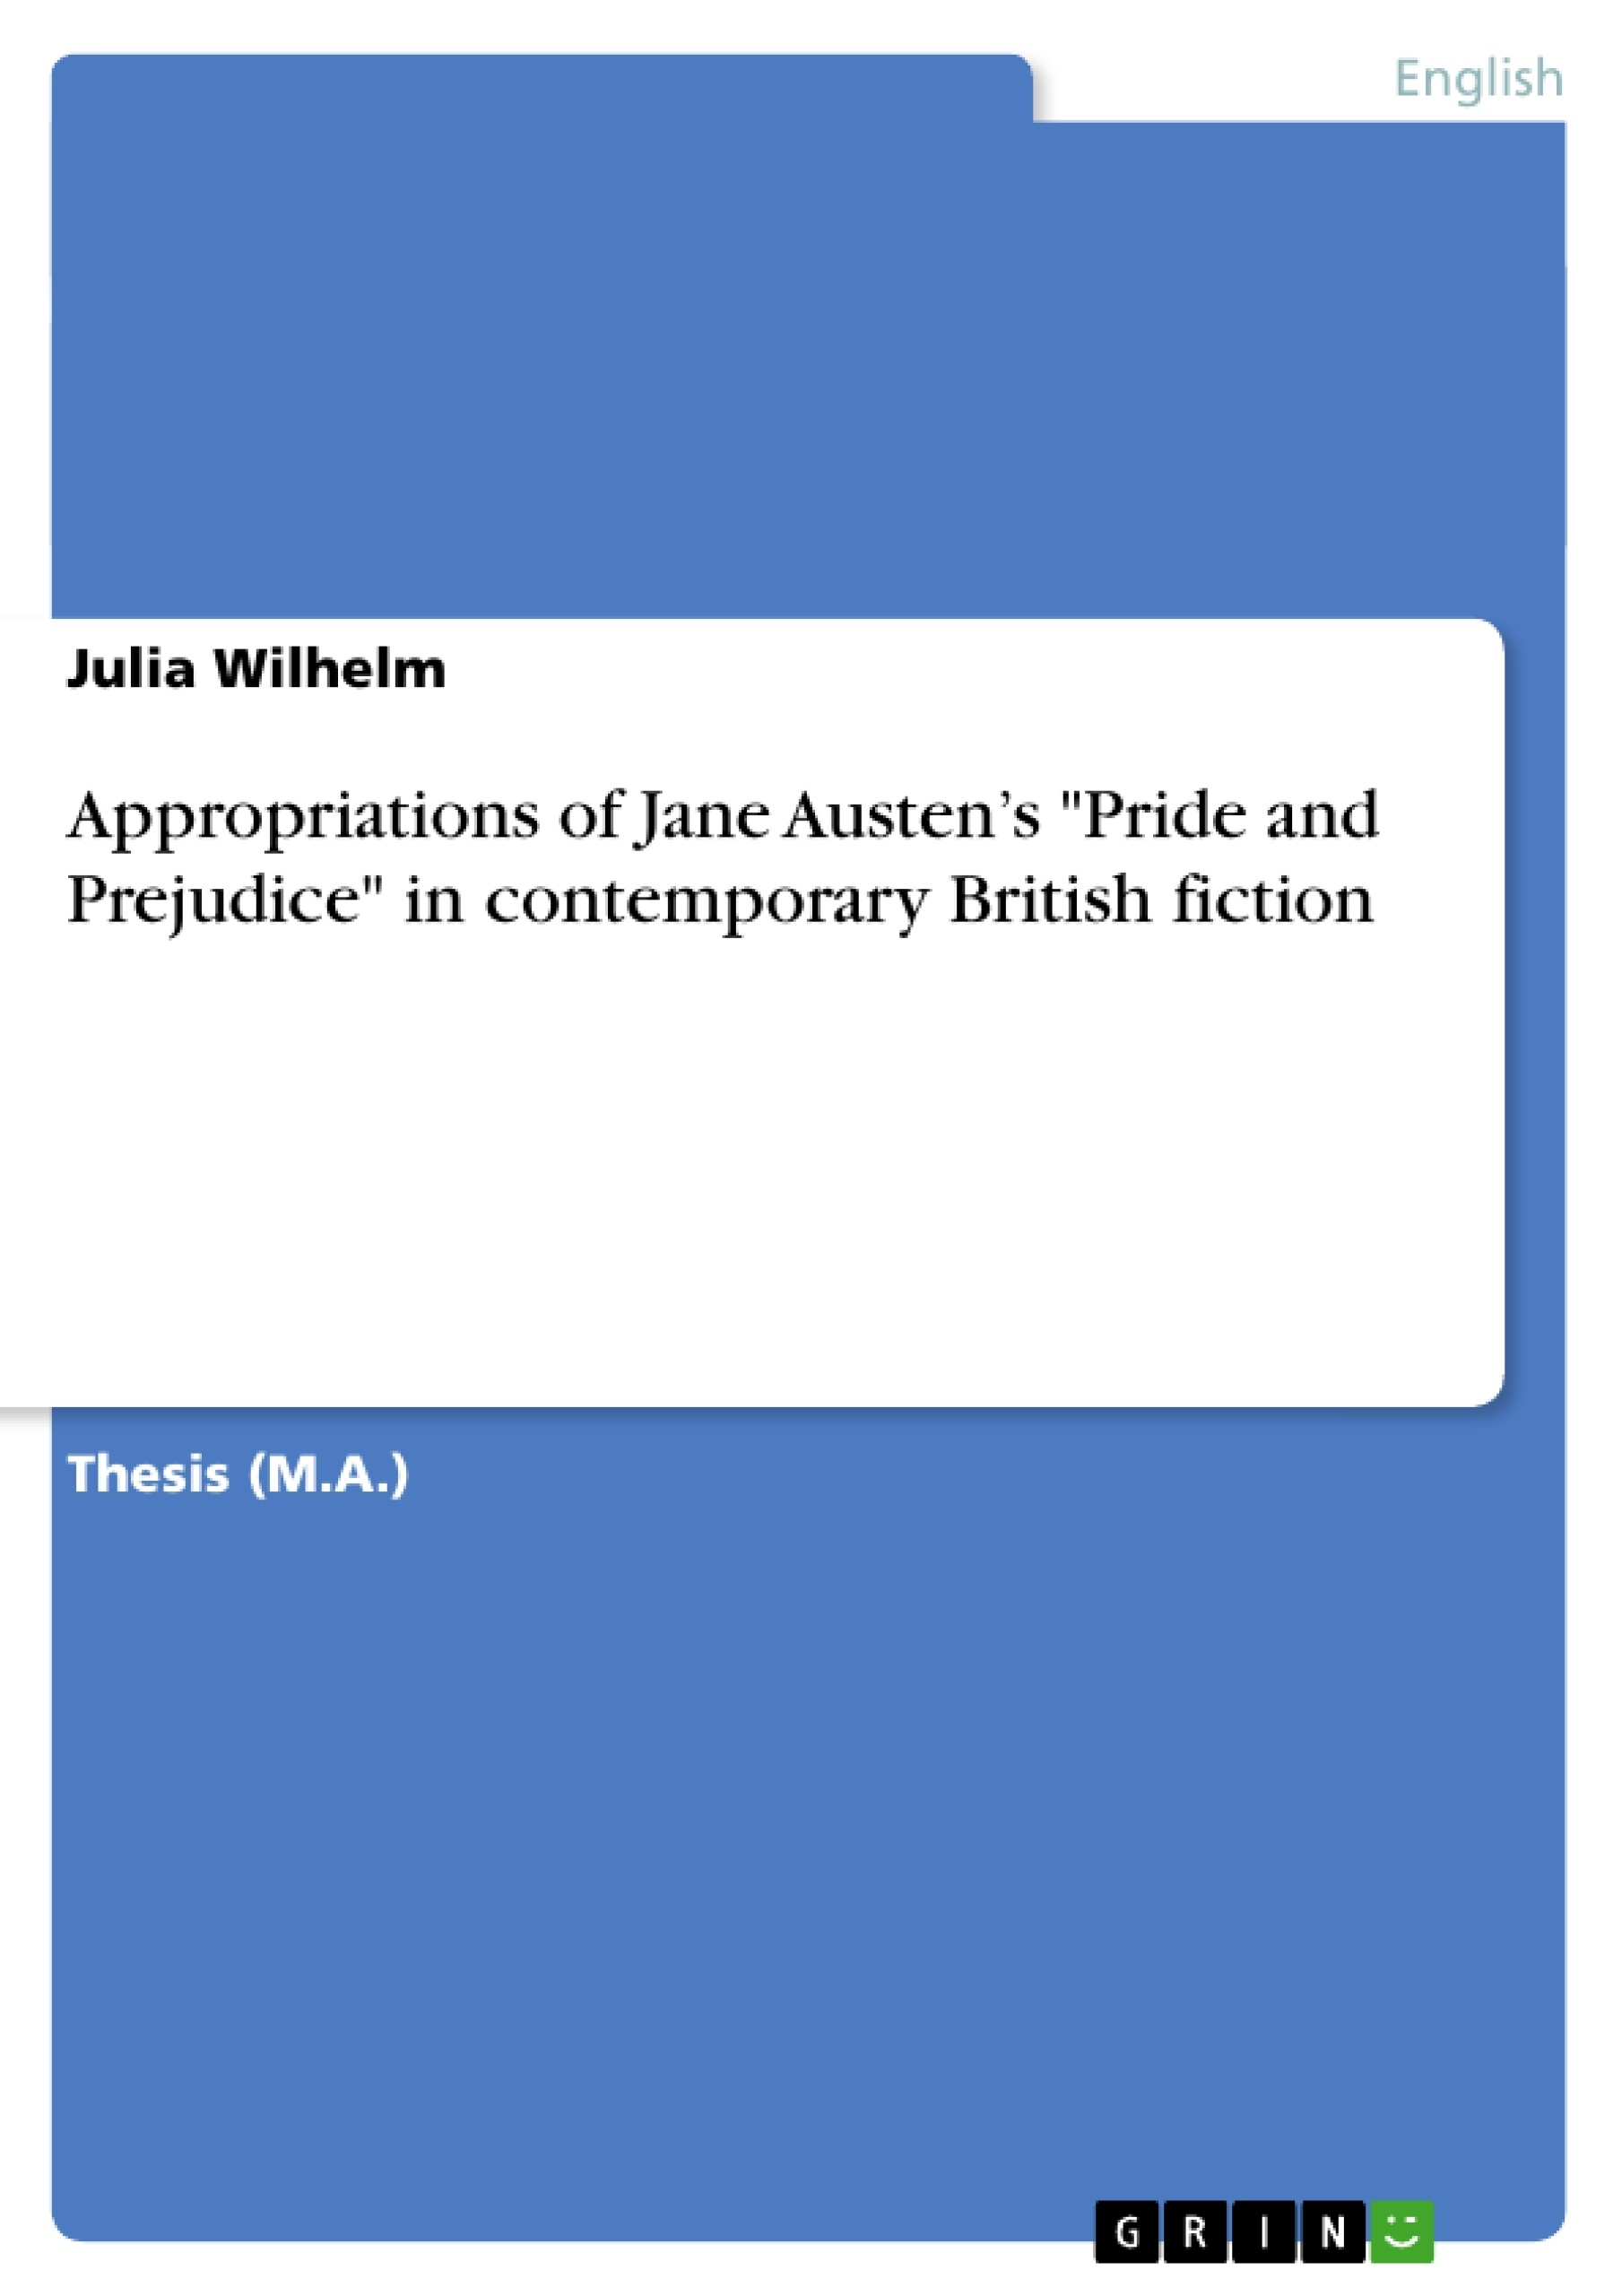 appropriations of jane austen s pride and prejudice in  upload your own papers earn money and win an iphone x